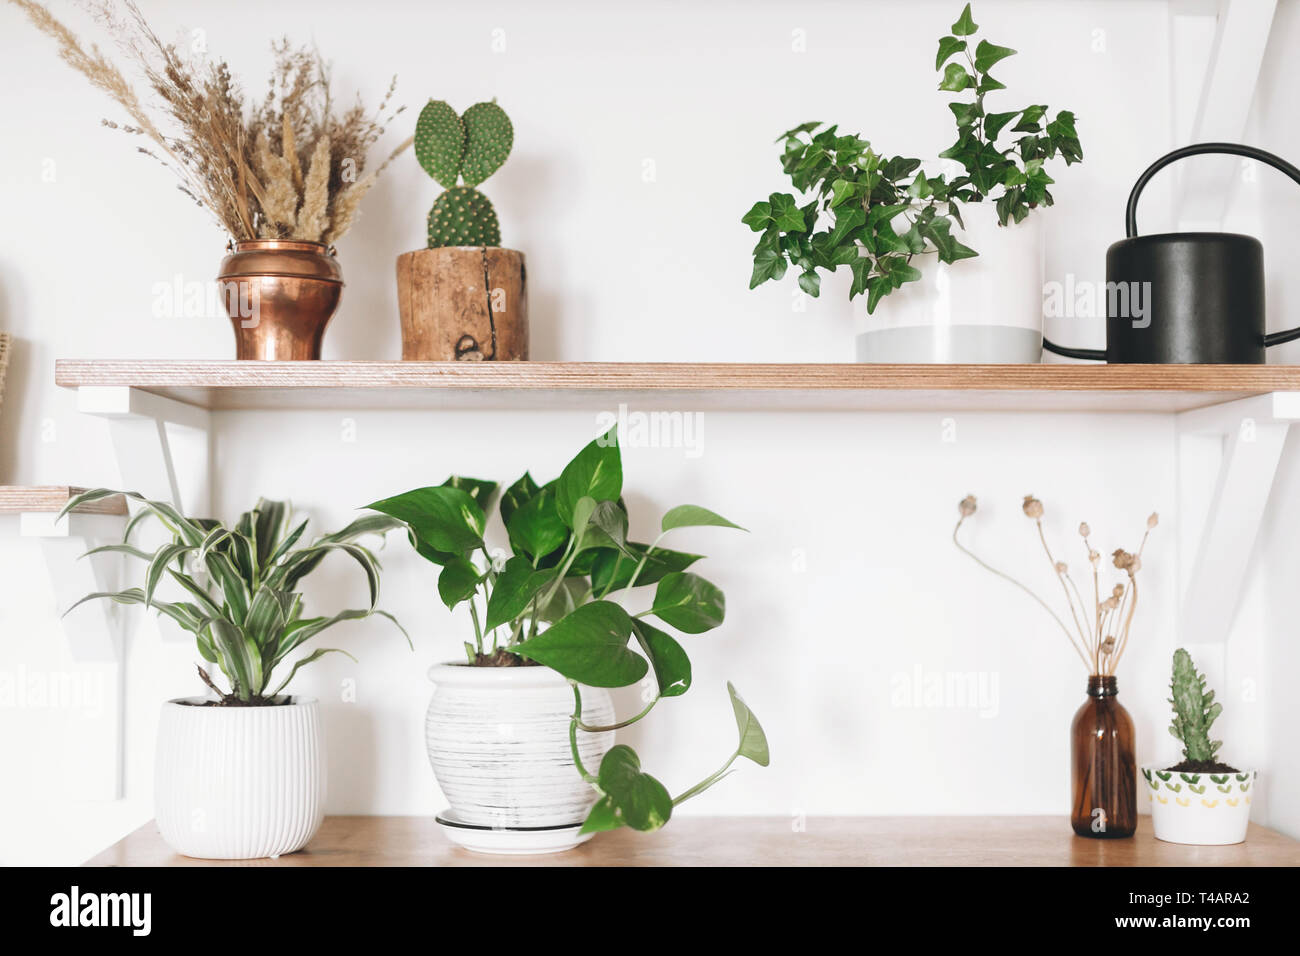 Image of: Stylish Wooden Shelves With Green Plants Black Watering Can Boho Wildflowers Modern Hipster Room Decor Cactus Epipremnum Pothos Dracaena Ivy Fl Stock Photo Alamy